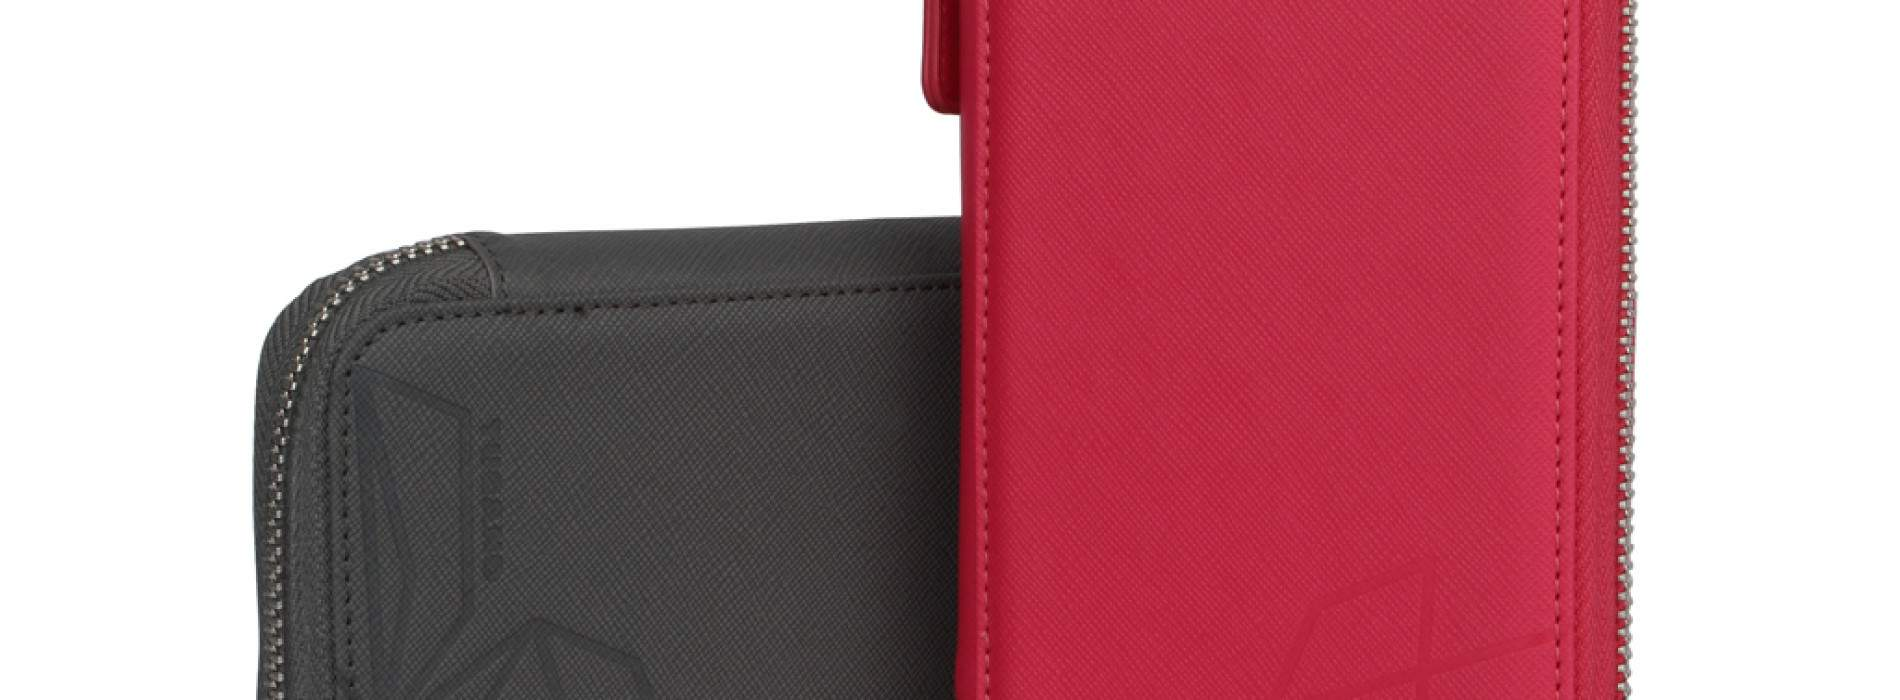 Tucano Wallet: Más que una funda para iPhone 6